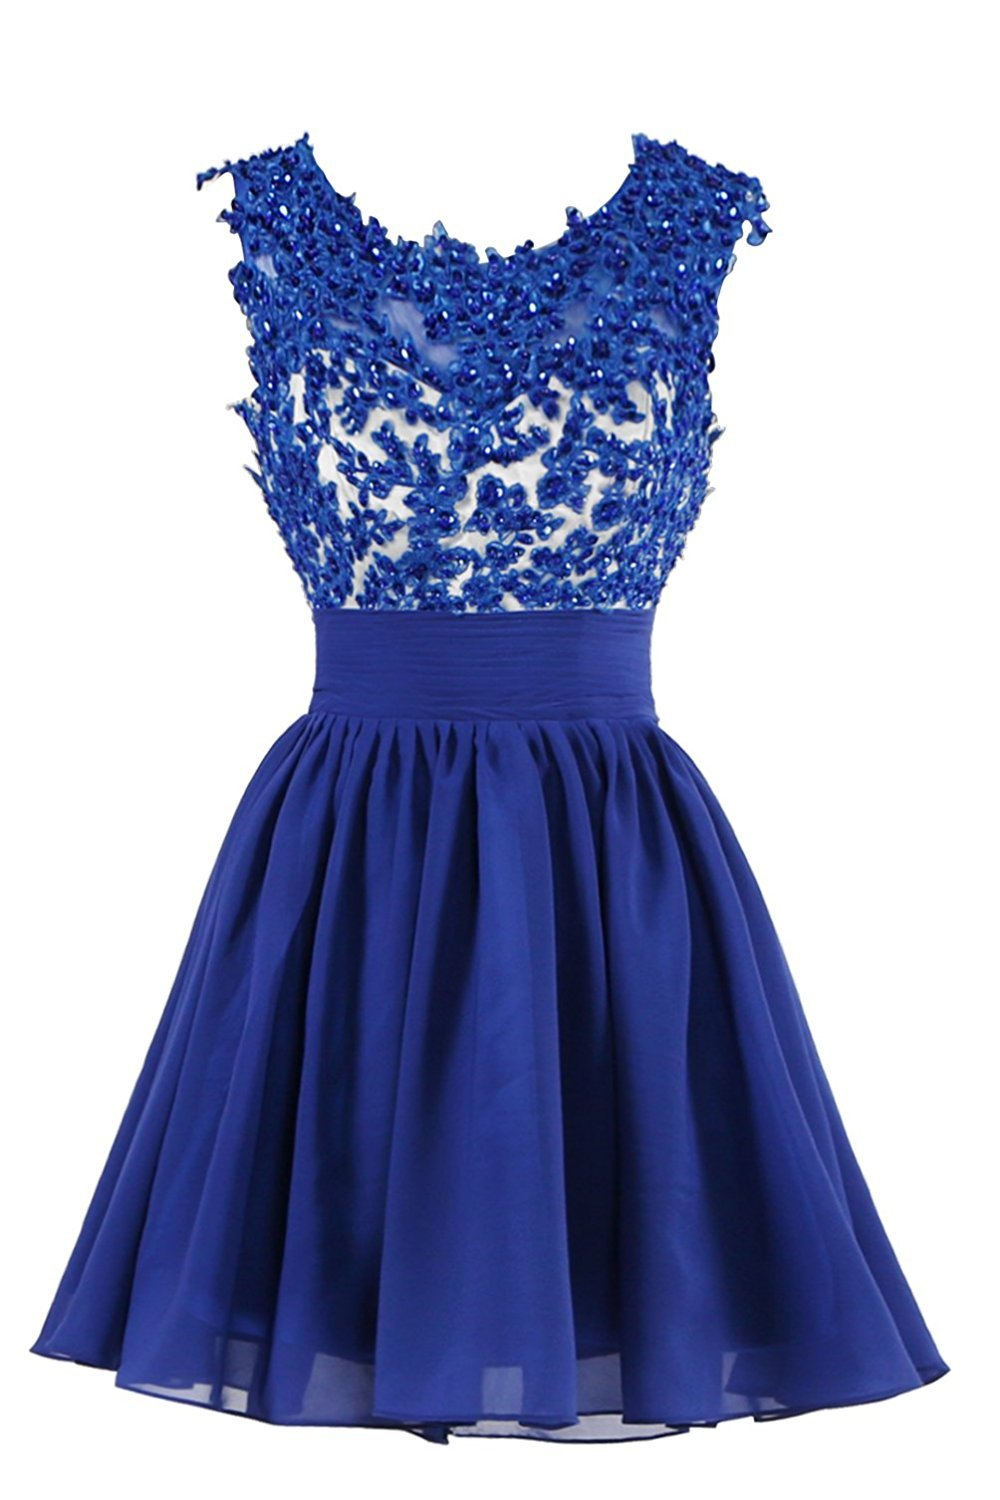 Primary image for Applique Beading Short Homecoming Dresses Lace Cocktail Prom Dresses Short 2017